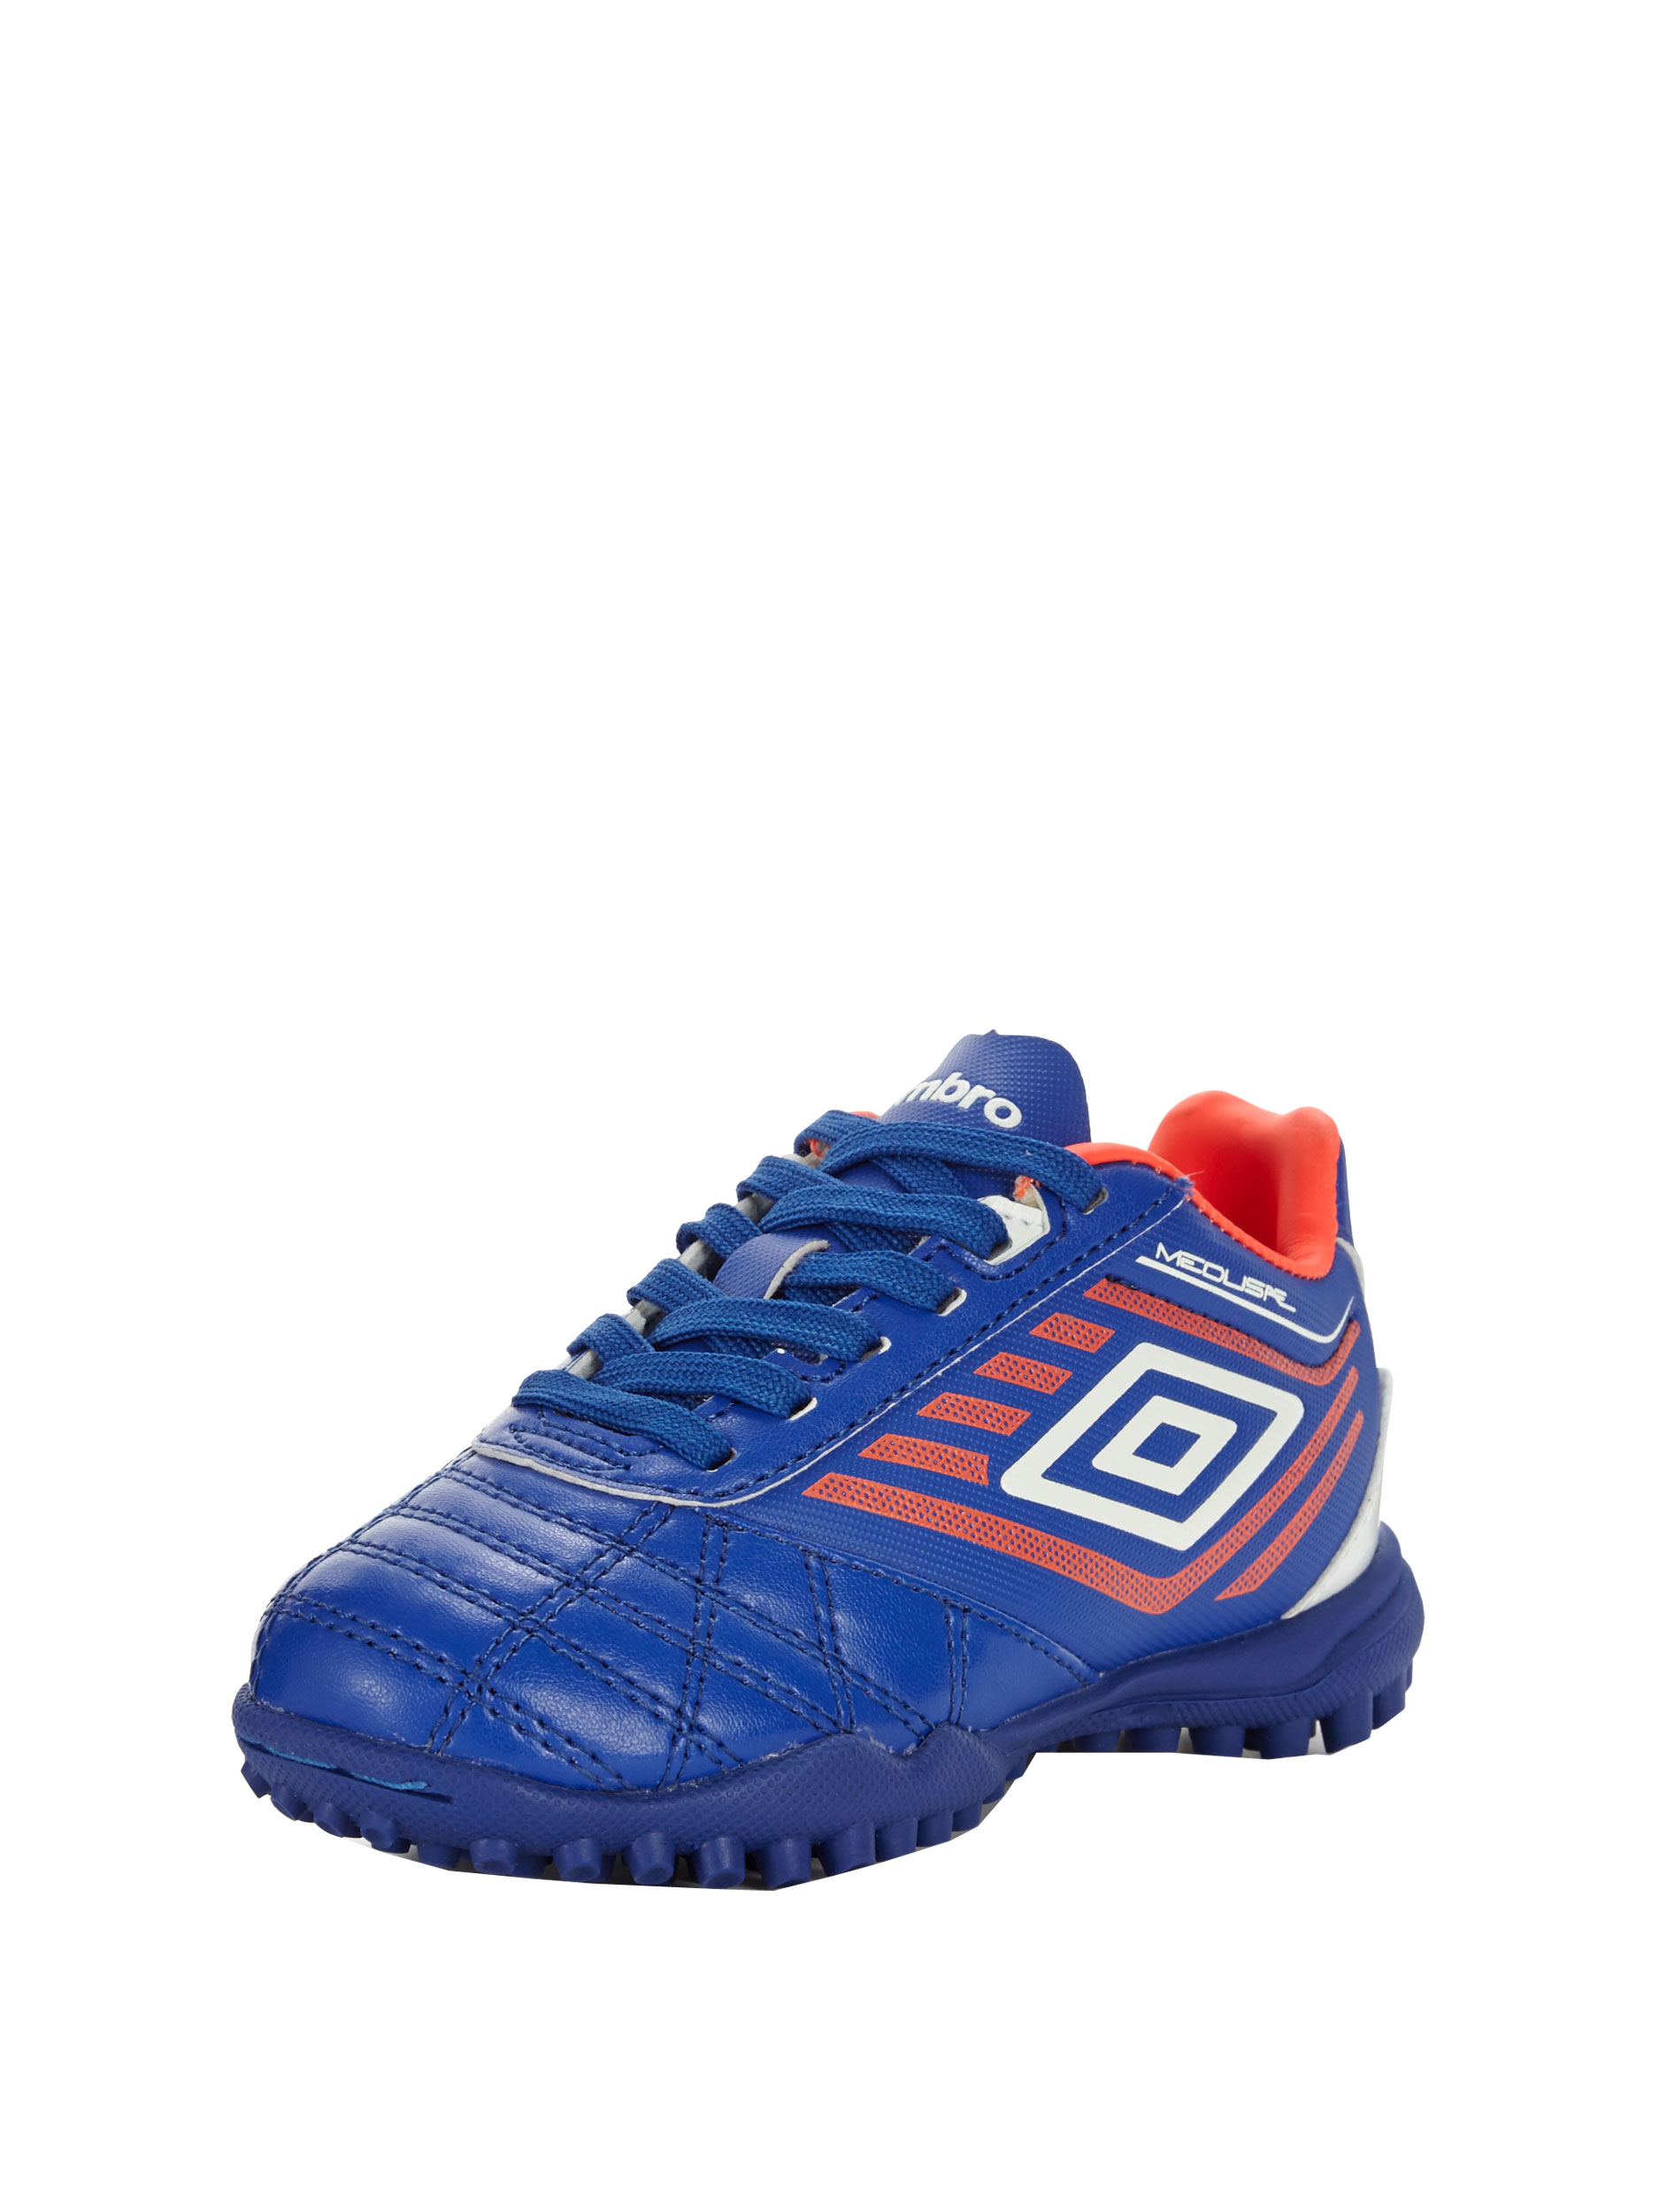 Umbro Medus Club Junior Astro Turf Boots